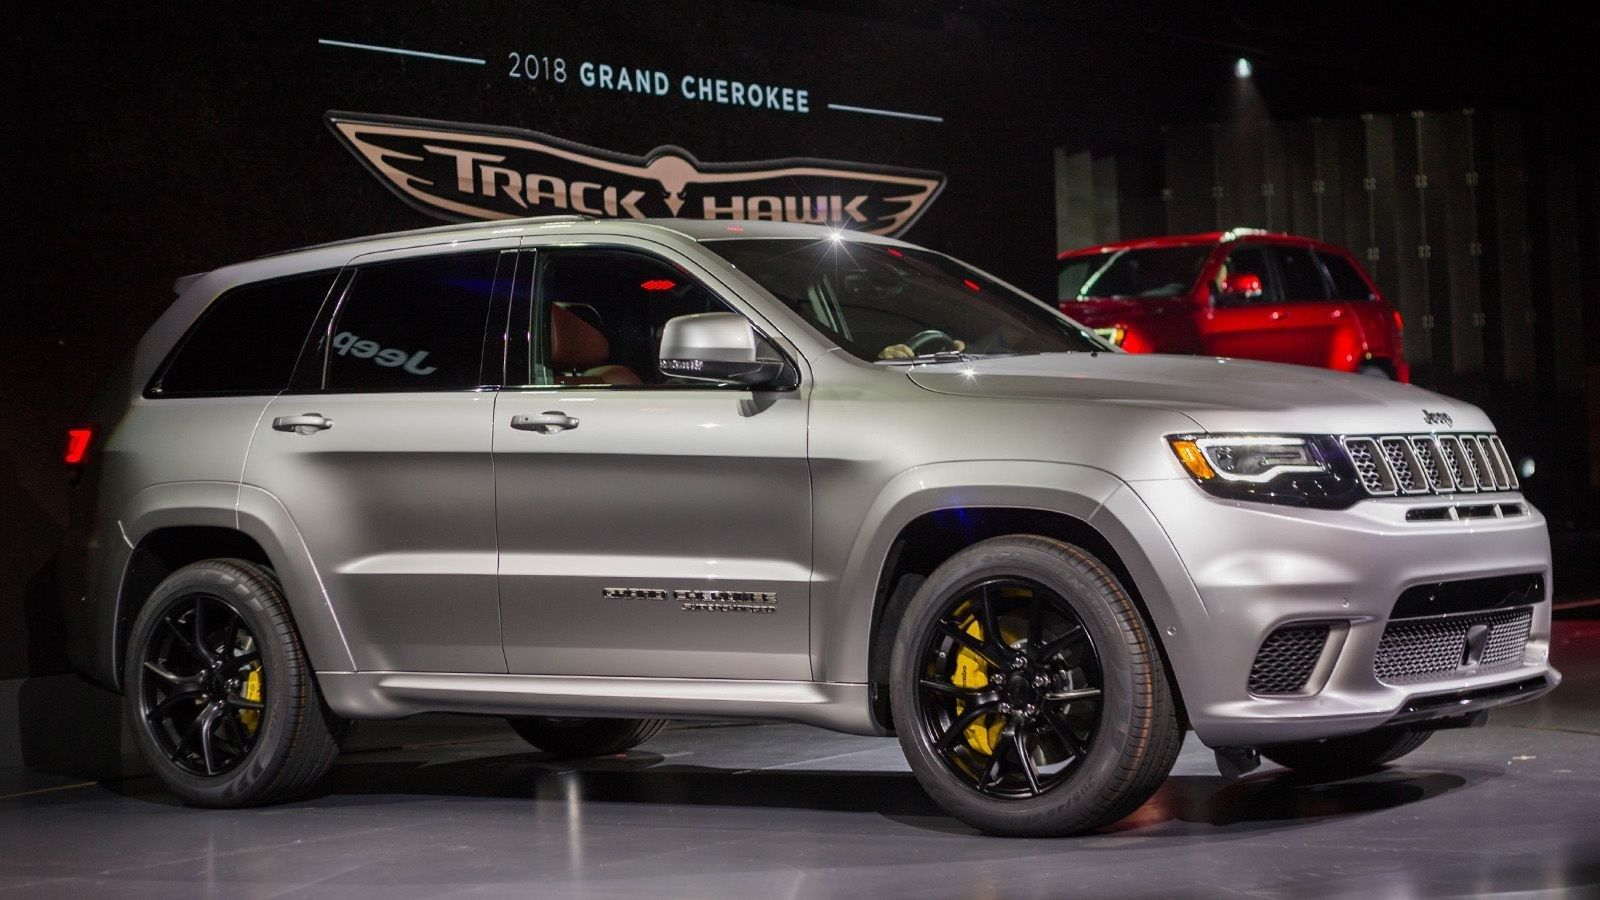 2018 Grand Cherokee Srt Hellcat Picture, Release date, and